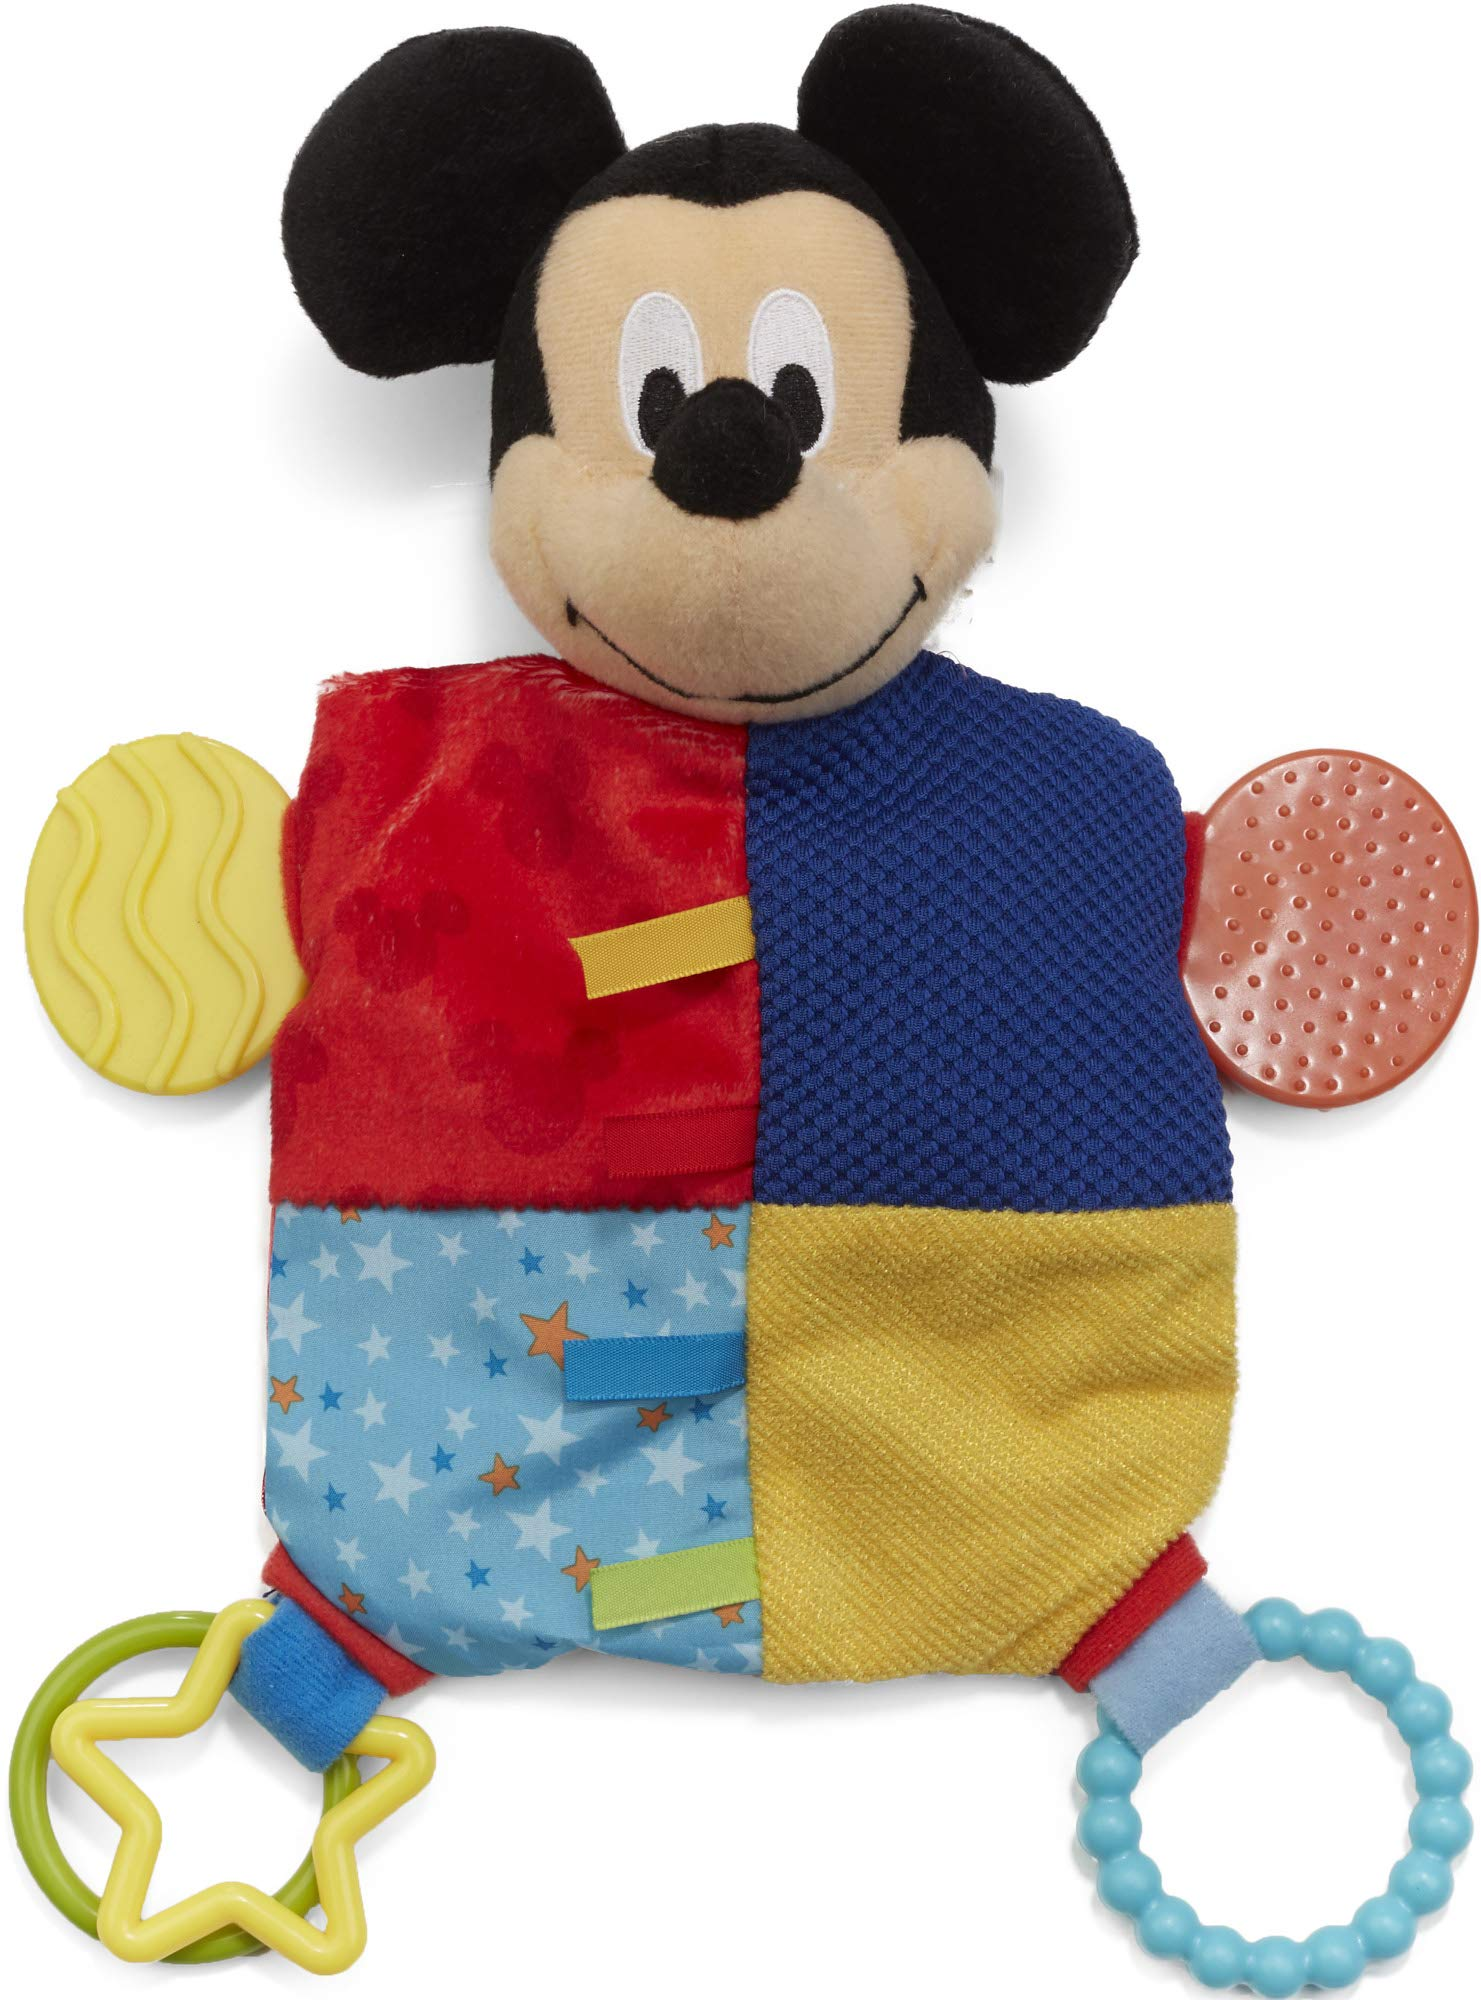 b08dac9672a0 Amazon.com  Disney Mickey Mouse Flannel and Sherpa Double Sided ...